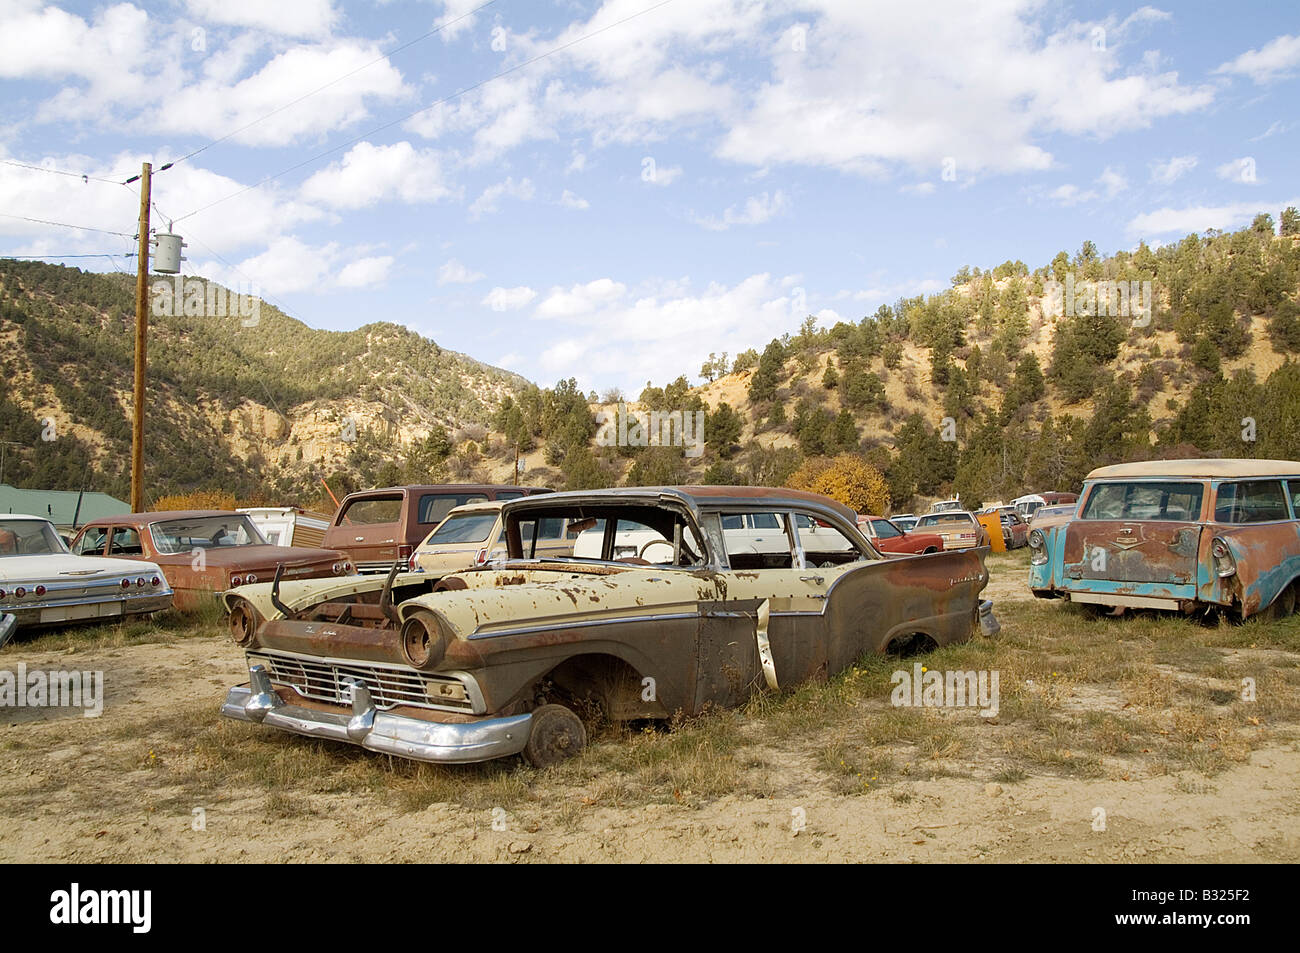 Junk Yard With Old Us Cars Stock Photos & Junk Yard With Old Us Cars ...